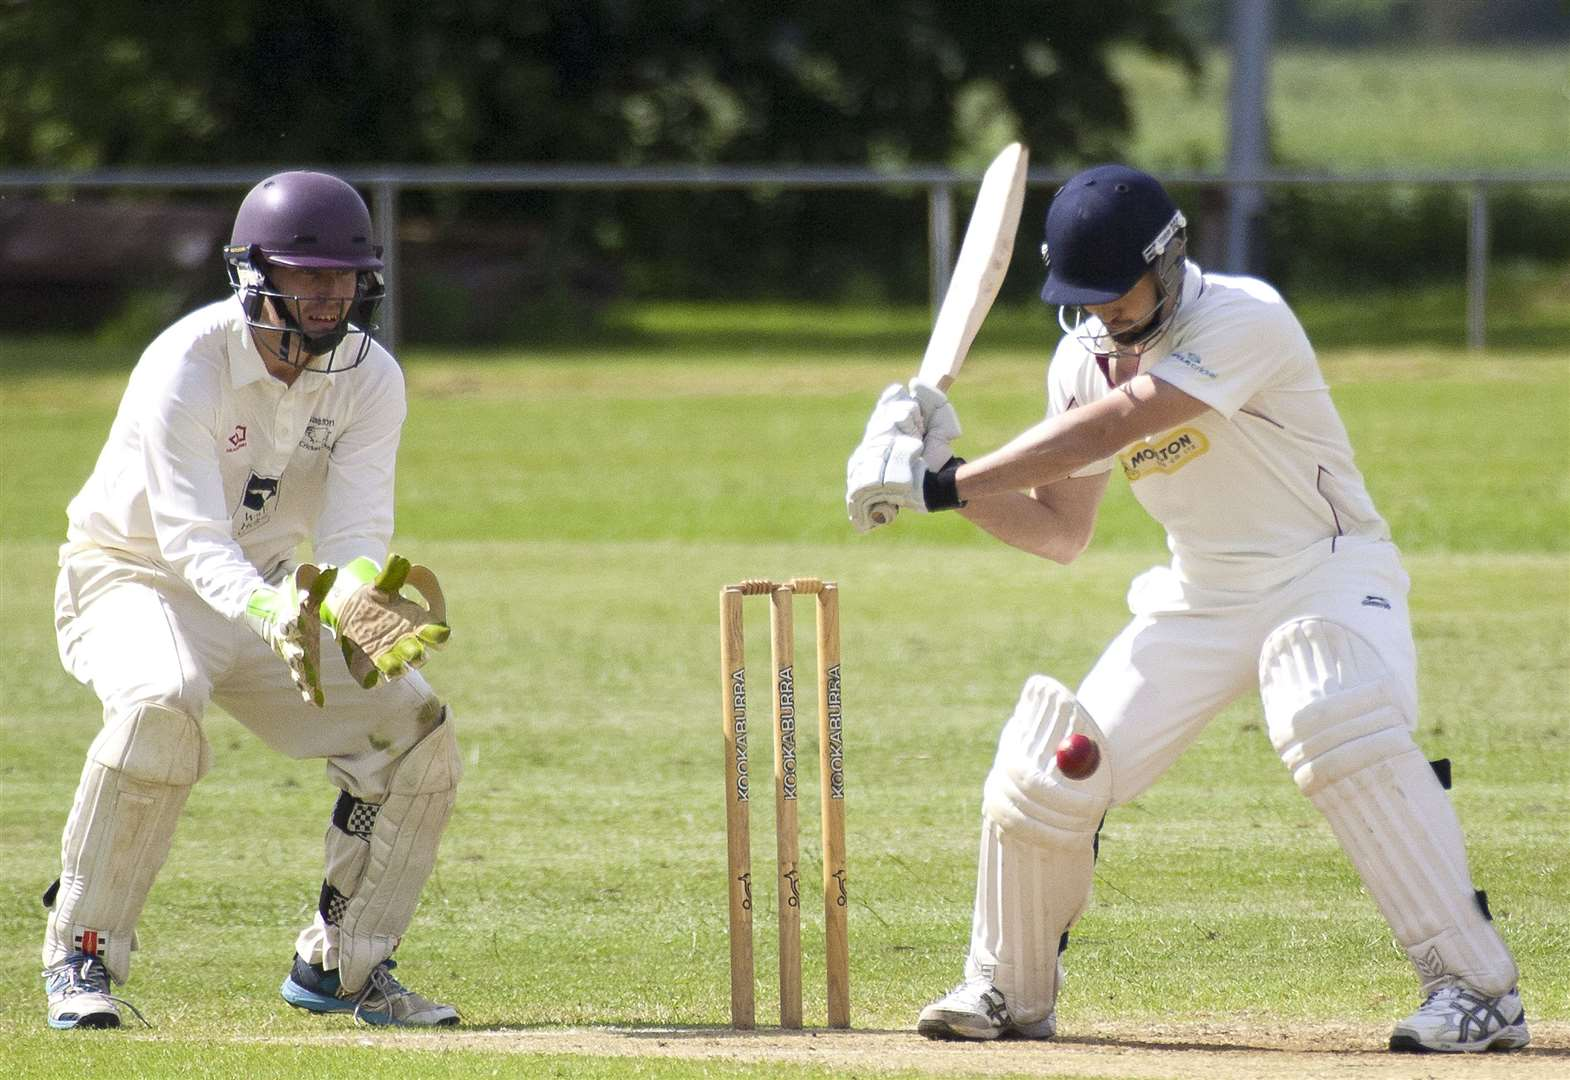 Tom takes six wickets as Bourne 2nds bounce back to winning ways